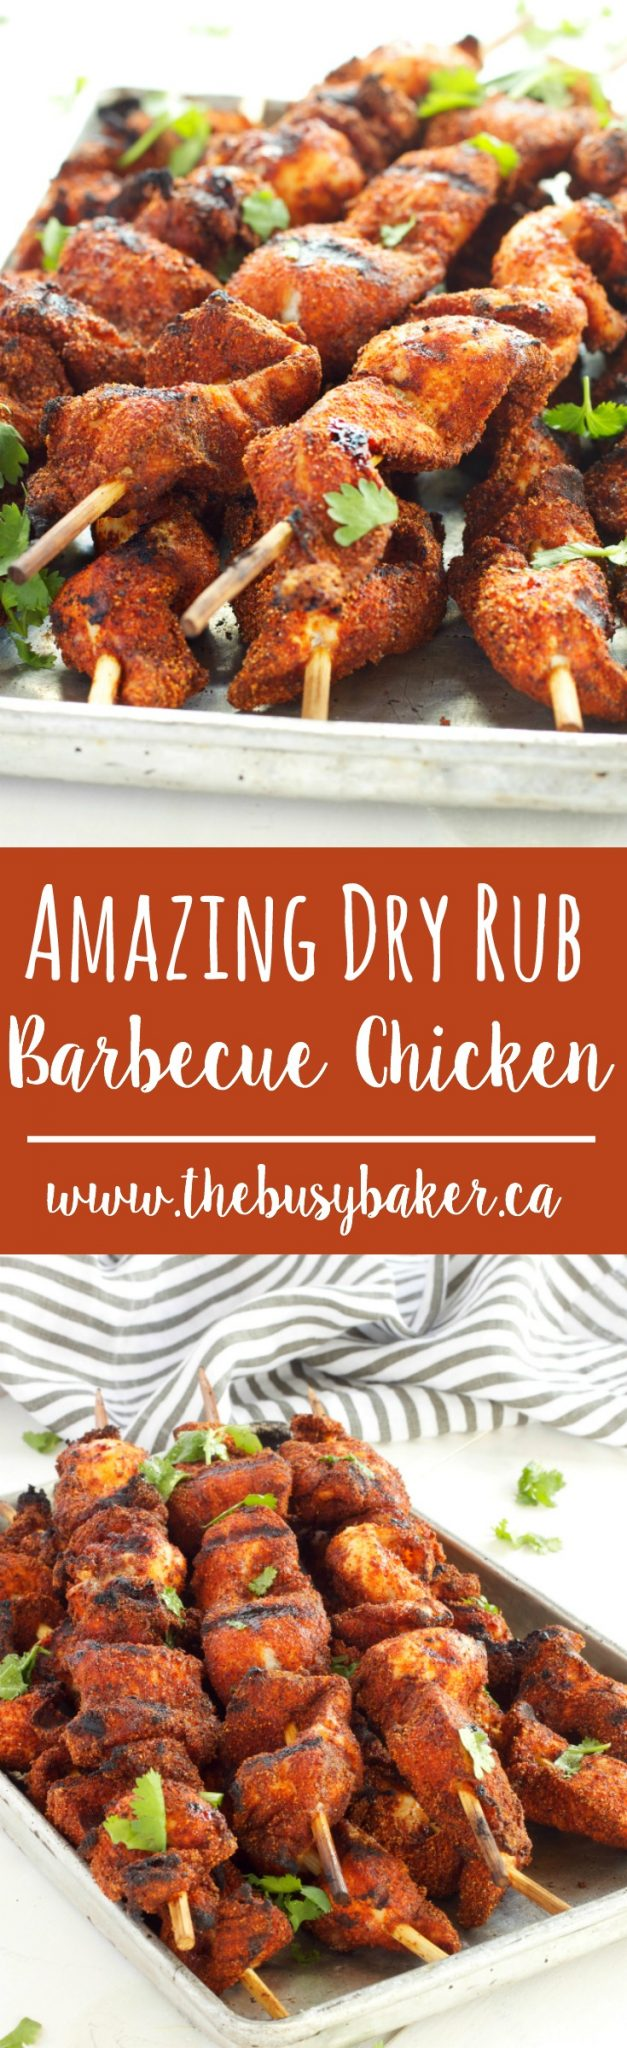 This Dry Rub Barbecue Chicken is crispy on the outside, juicy on the inside, and bursting with sweet barbecue flavour, making it perfect for grilling. Recipe from thebusybaker.ca! via @busybakerblog